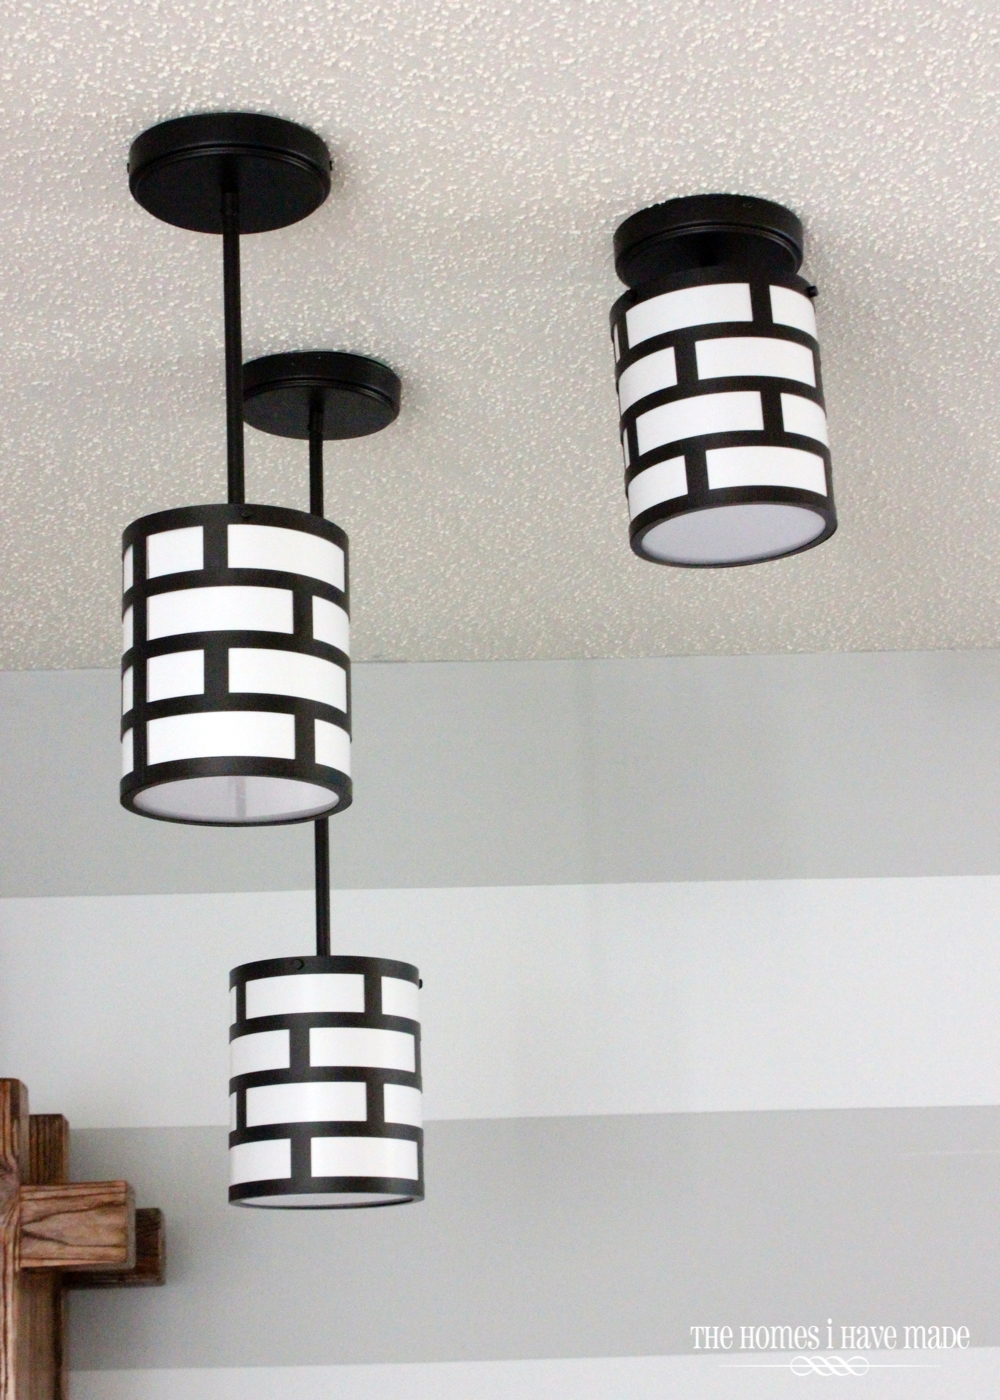 Install Ceiling Light Without Wiring - Circuit Wiring And Diagram Hub •